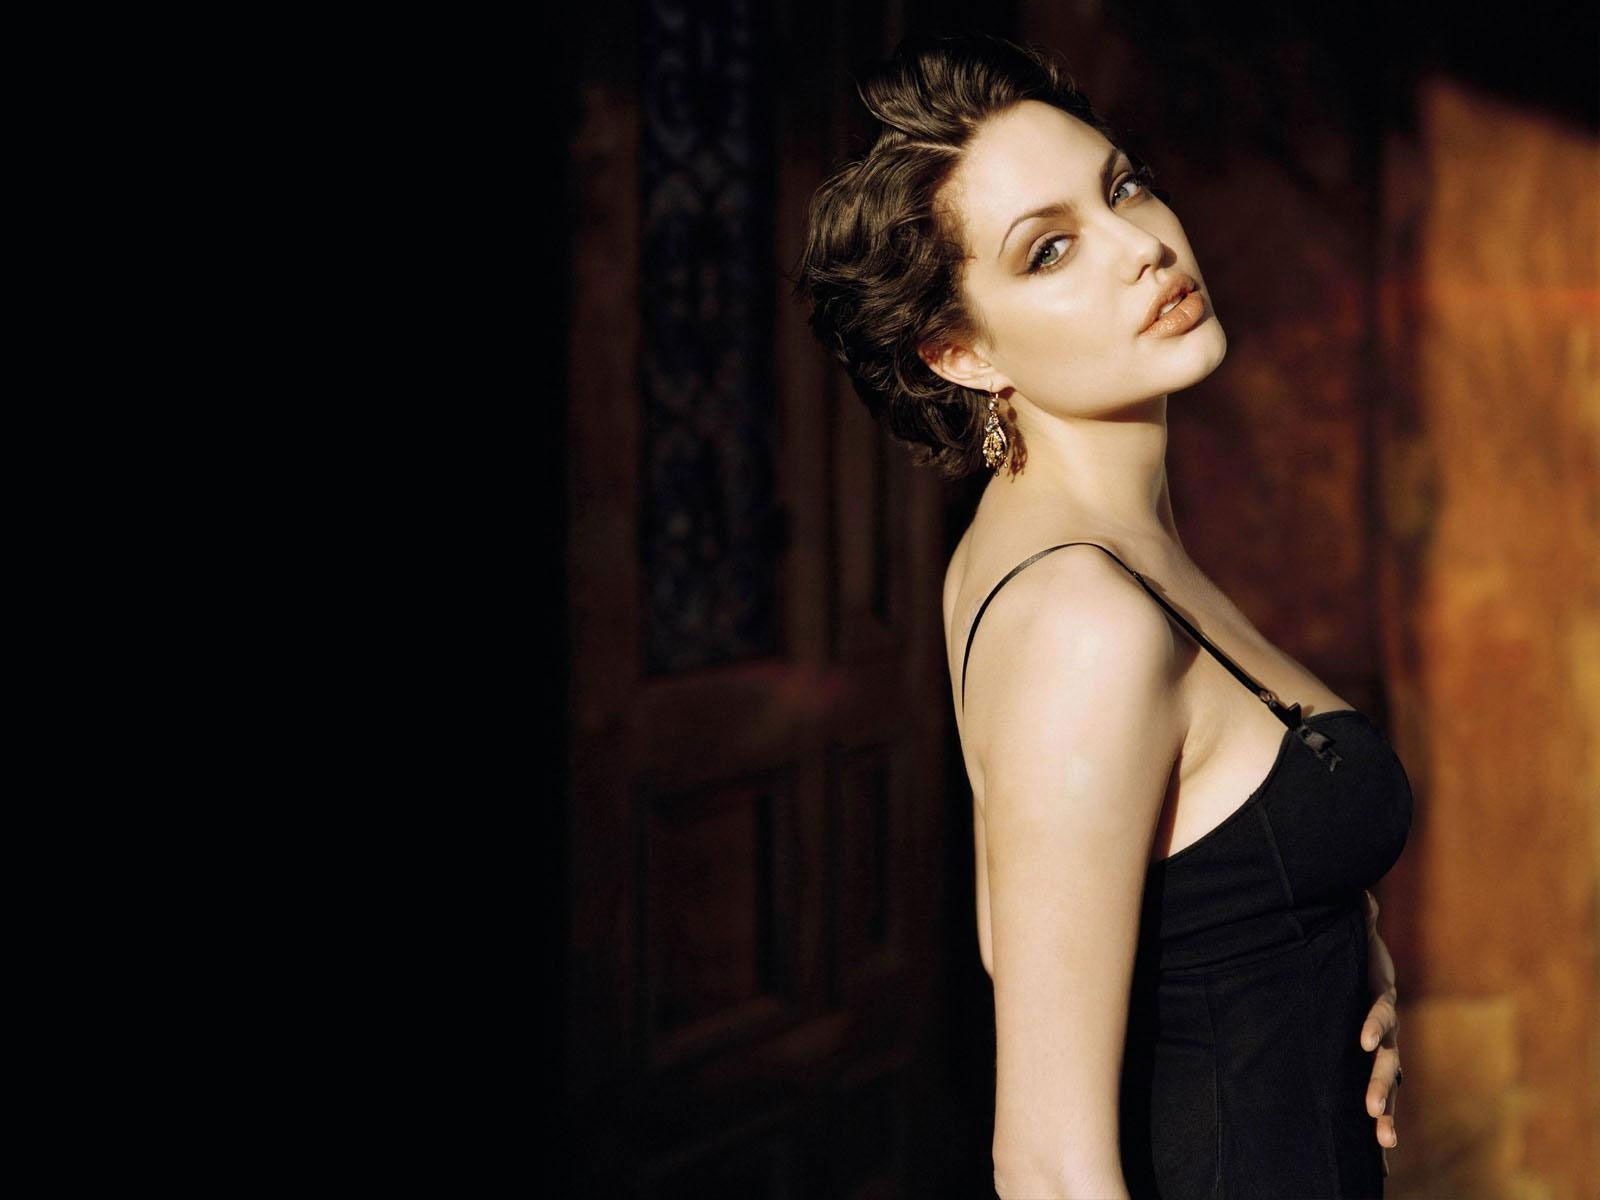 hollywood actress wallpapers noomi rapace hd wallpapers. Black Bedroom Furniture Sets. Home Design Ideas